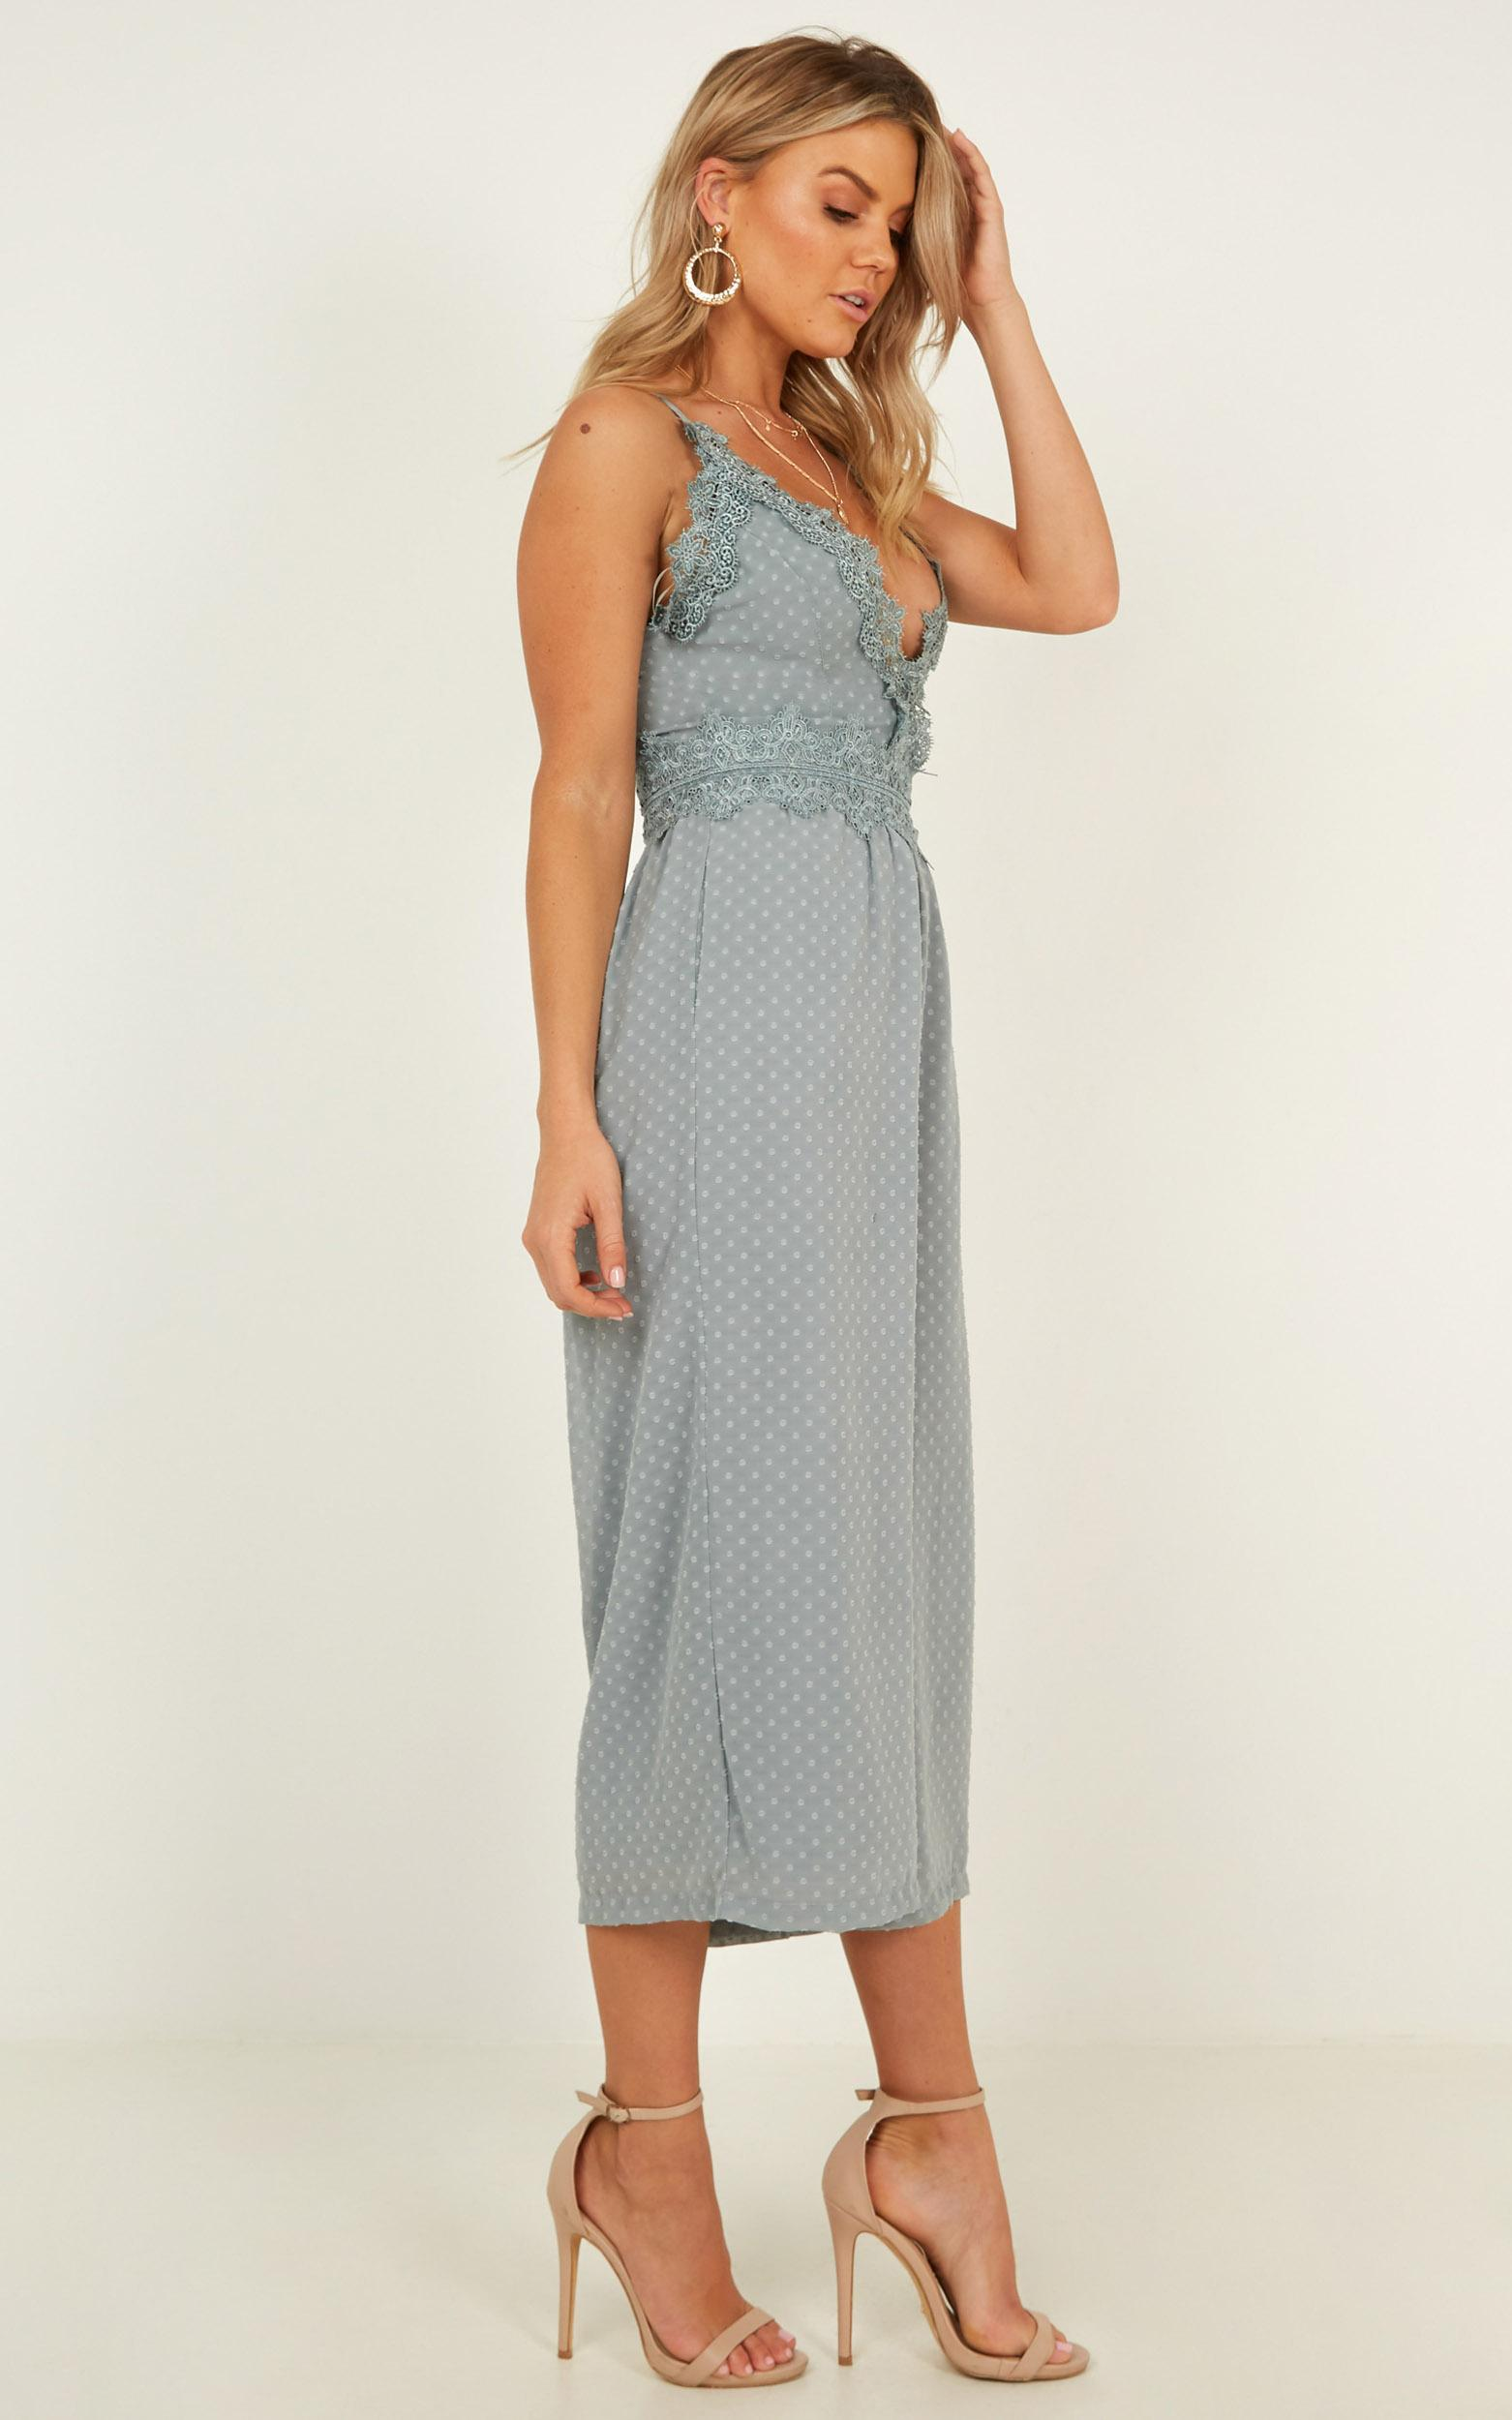 We Could Be Friends Jumpsuit in sage - 20 (XXXXL), Sage, hi-res image number null